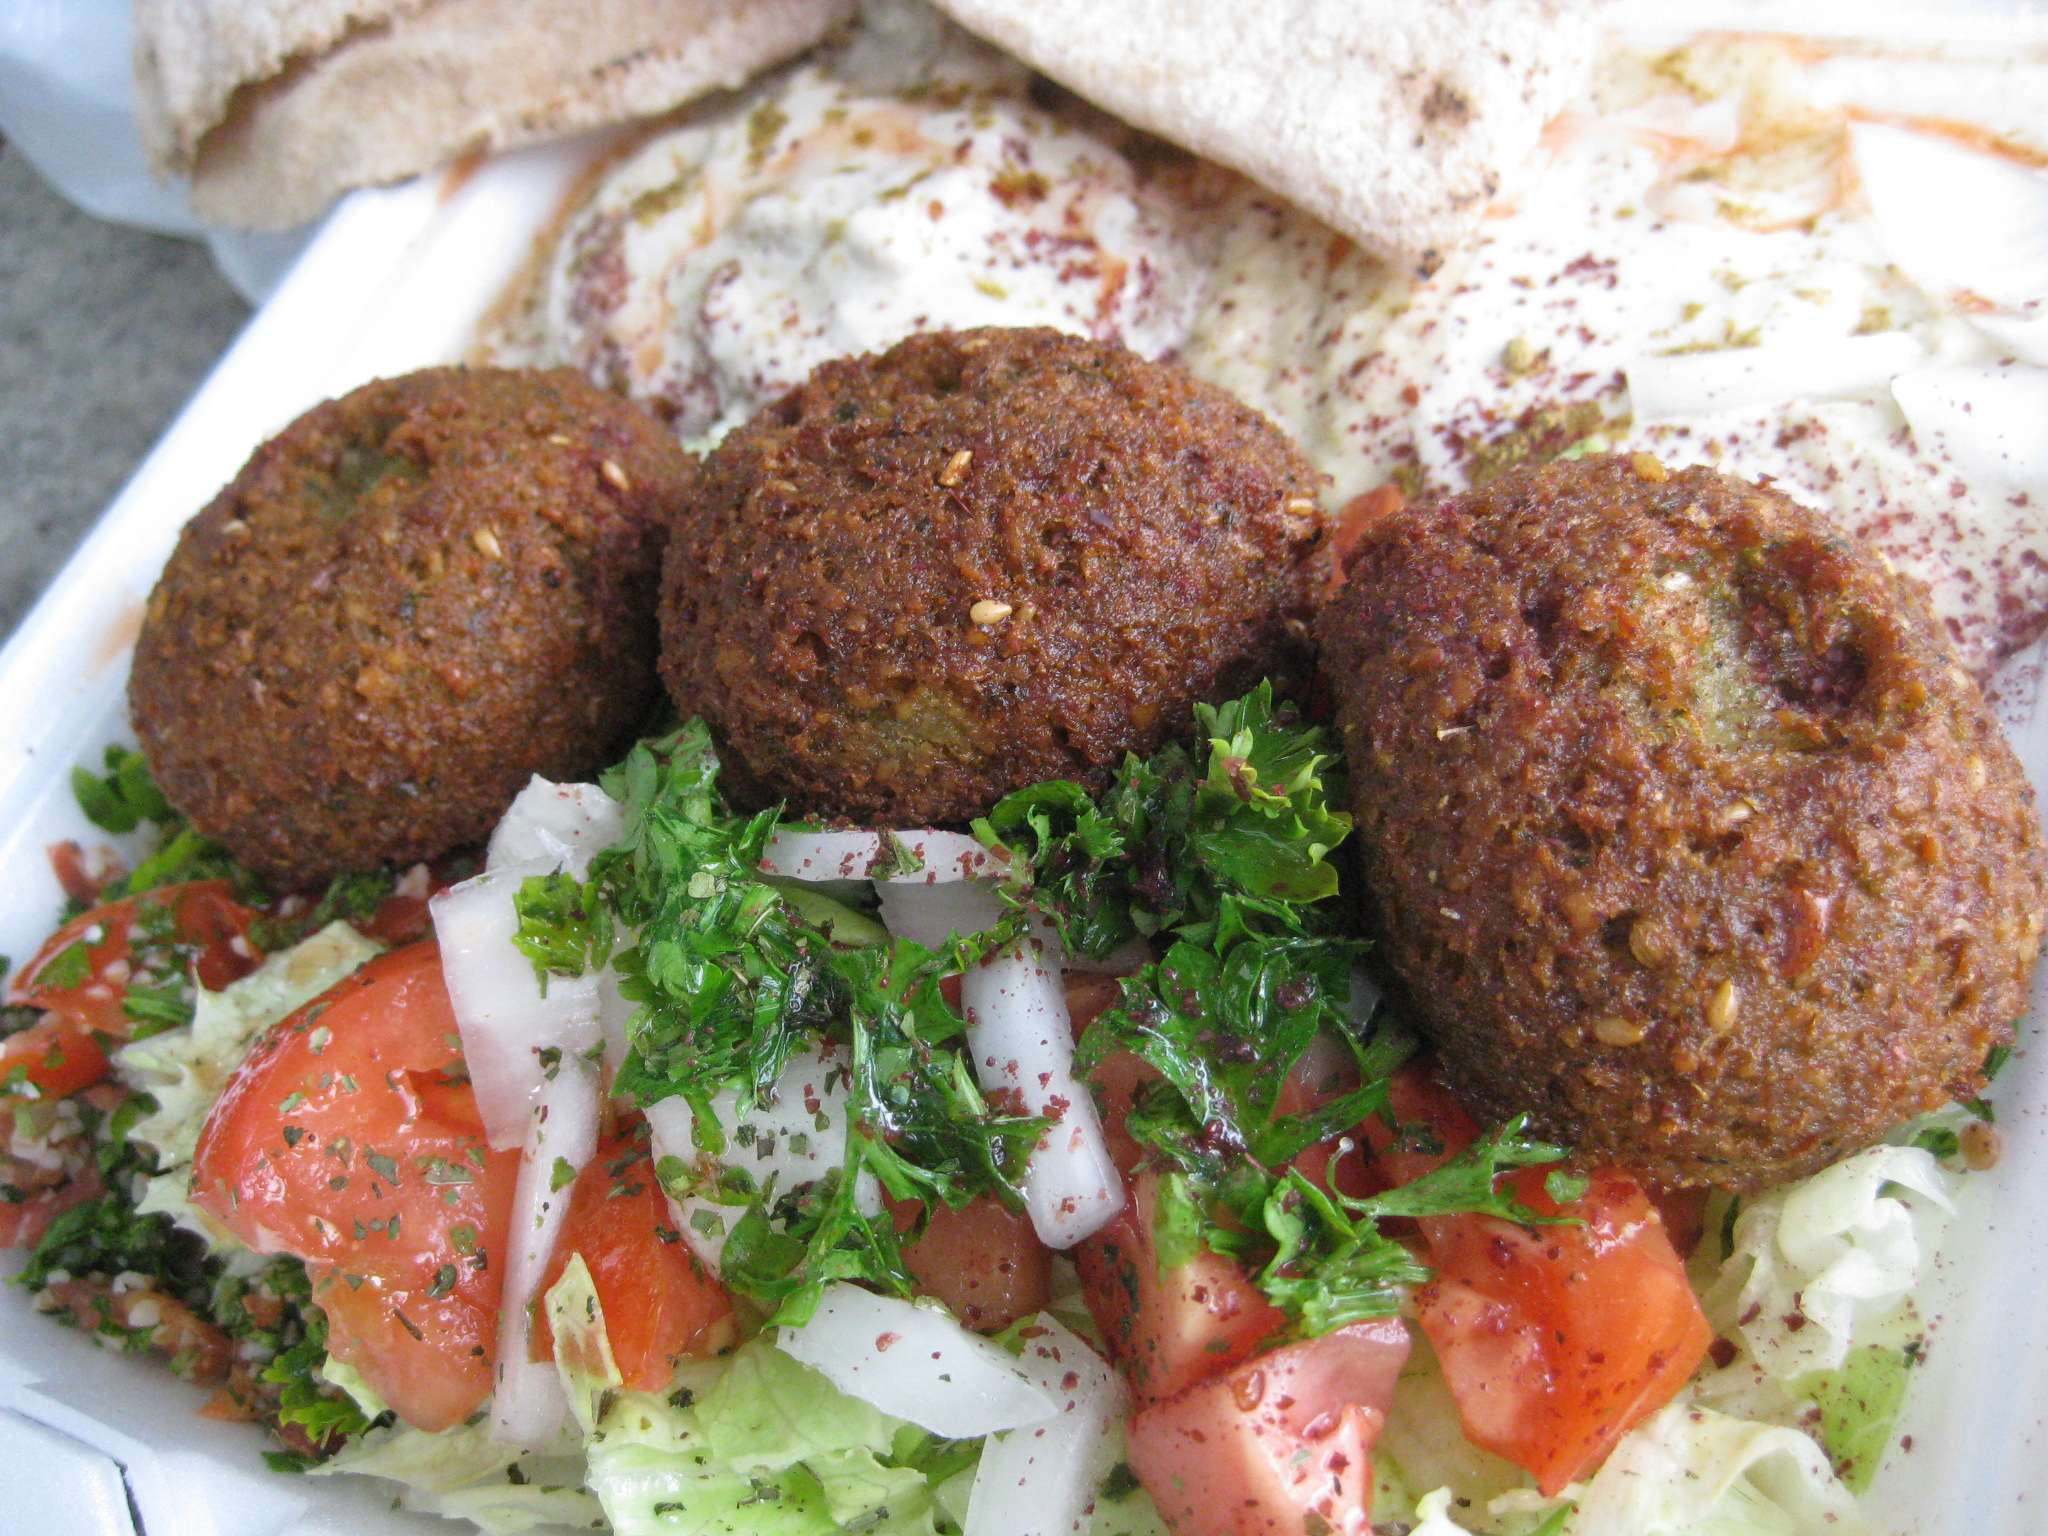 For $7 I received, 3 rocky mountain oyster sized falafel, hummus, baba ...